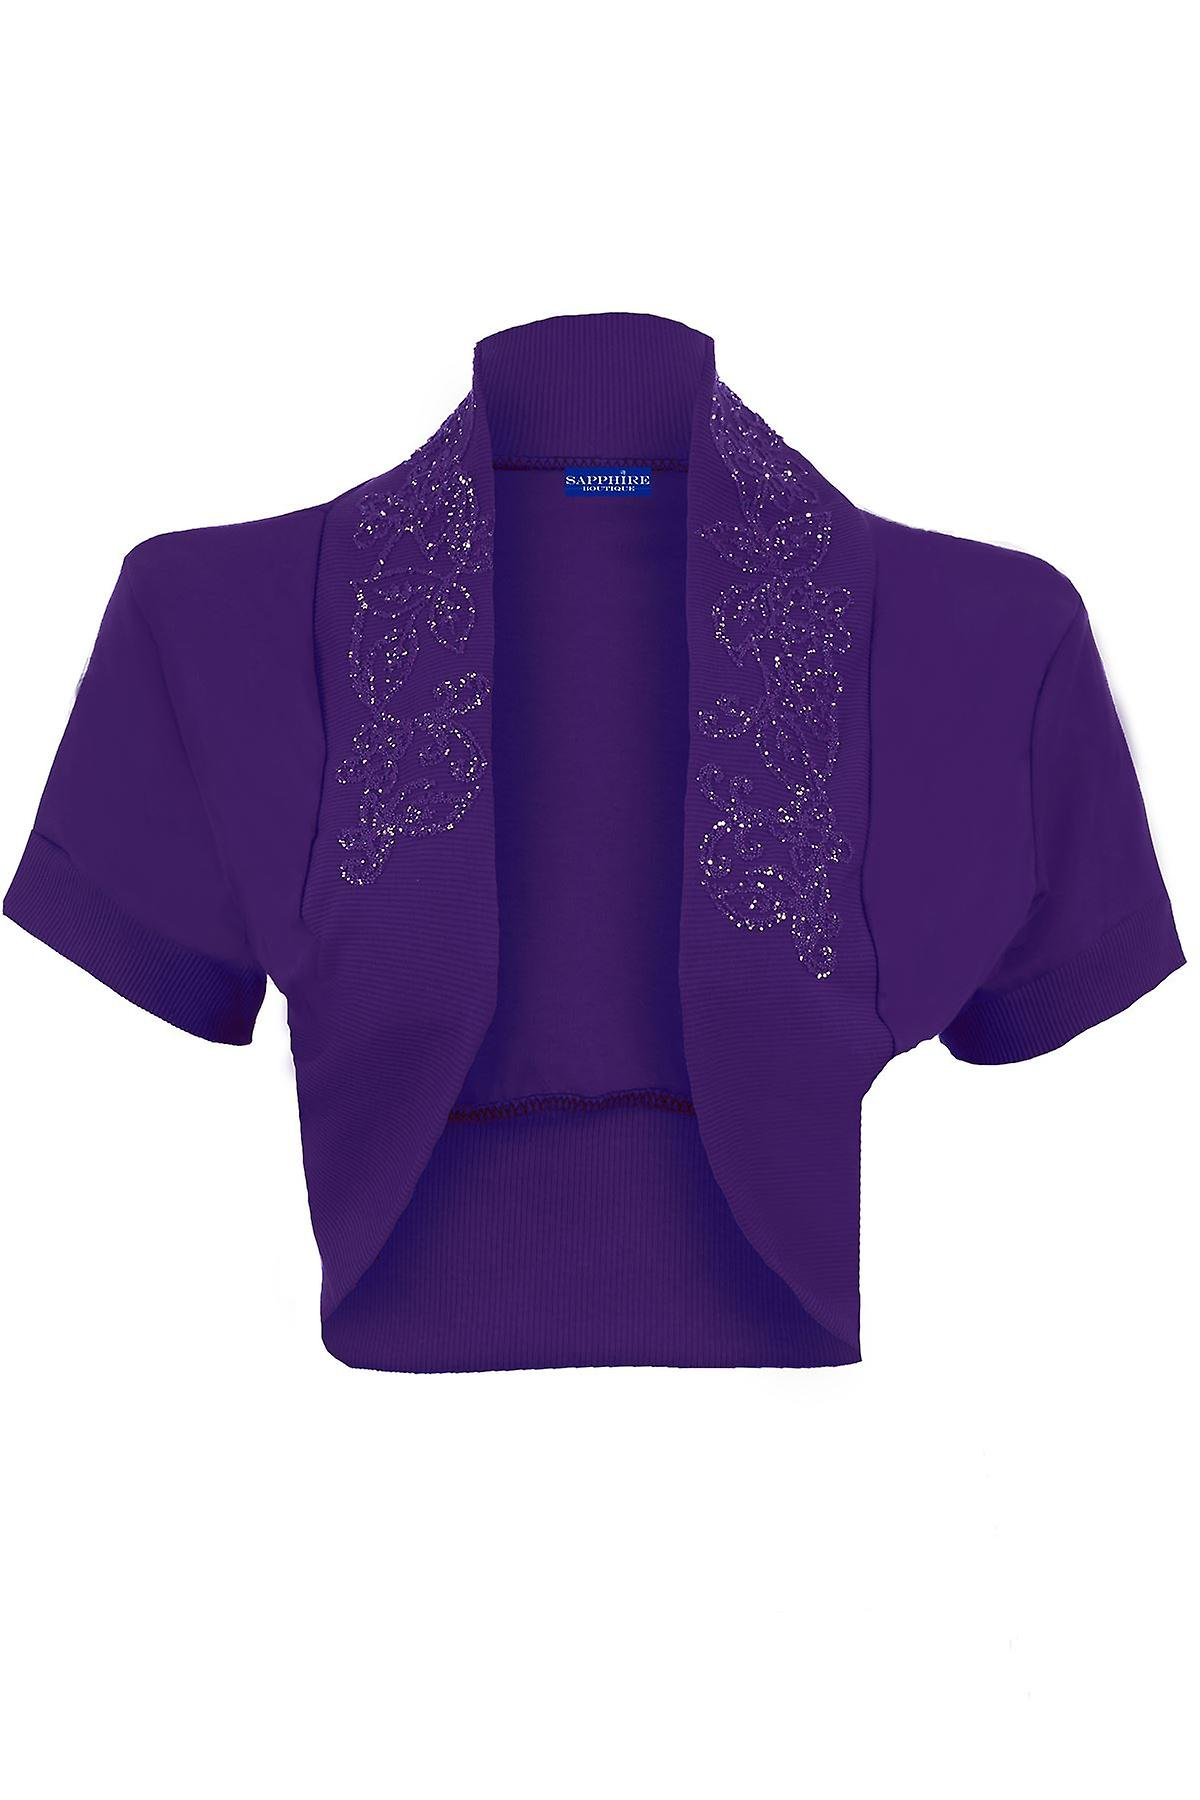 Ladies Beaded Open Short Sleeve Bolero Cardigan Women's Shrug